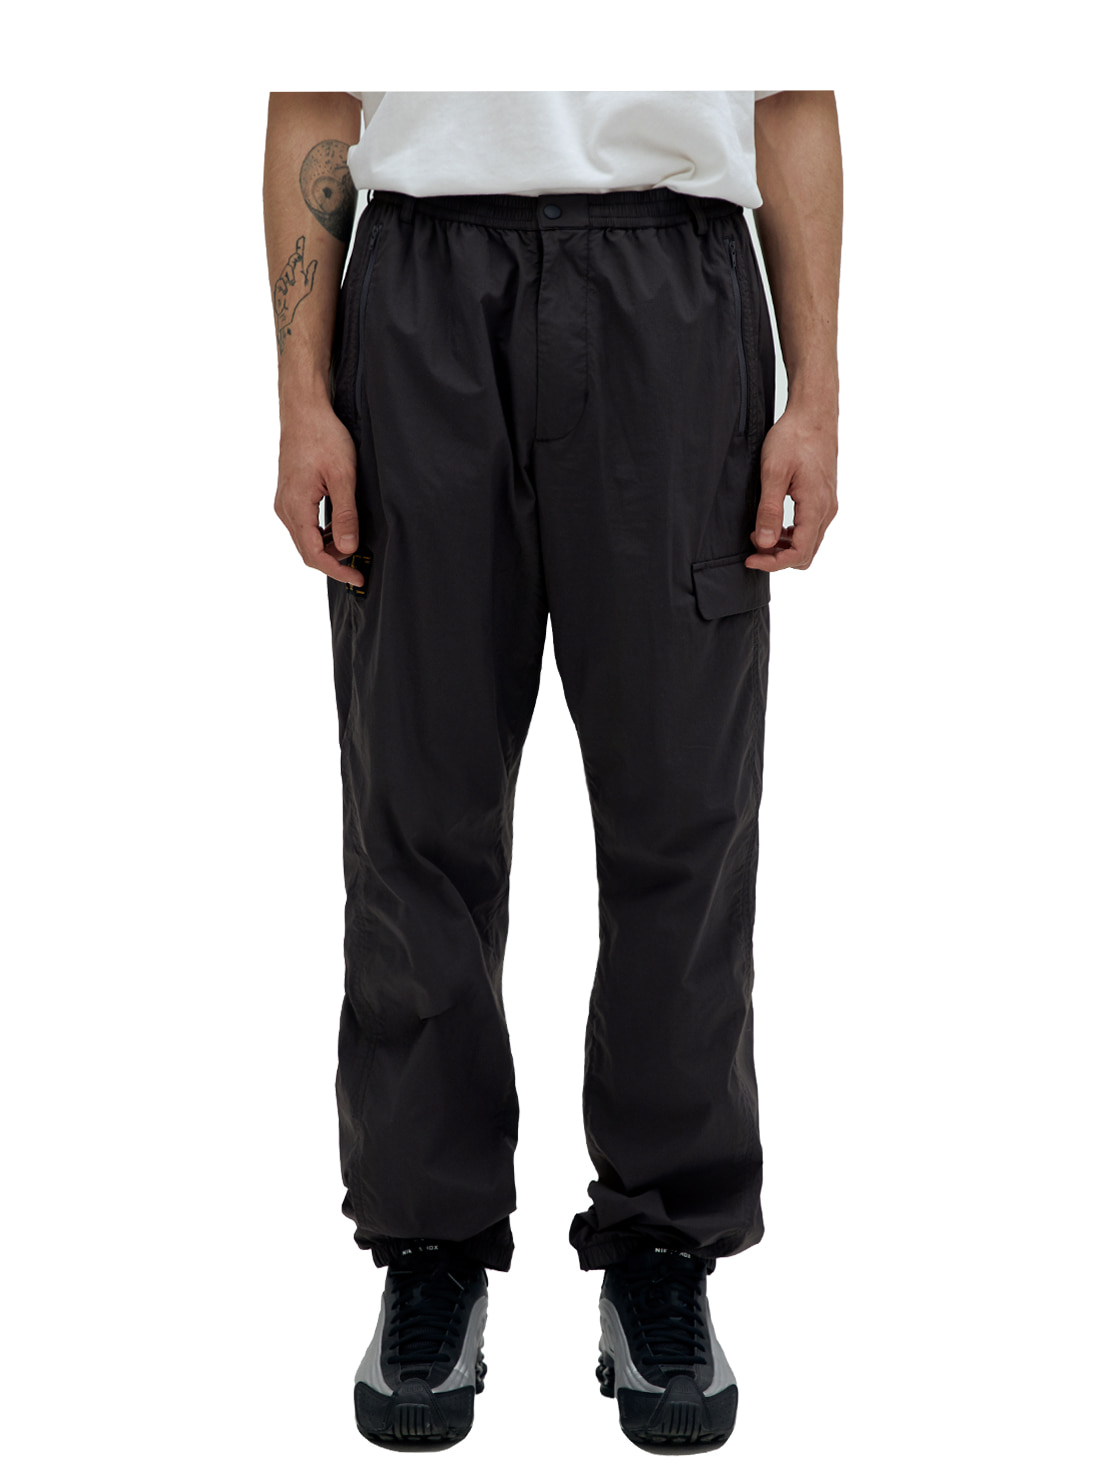 GOALSTUDIO SSFC OFFICIAL CLUB TROUSERS - CHARCOAL